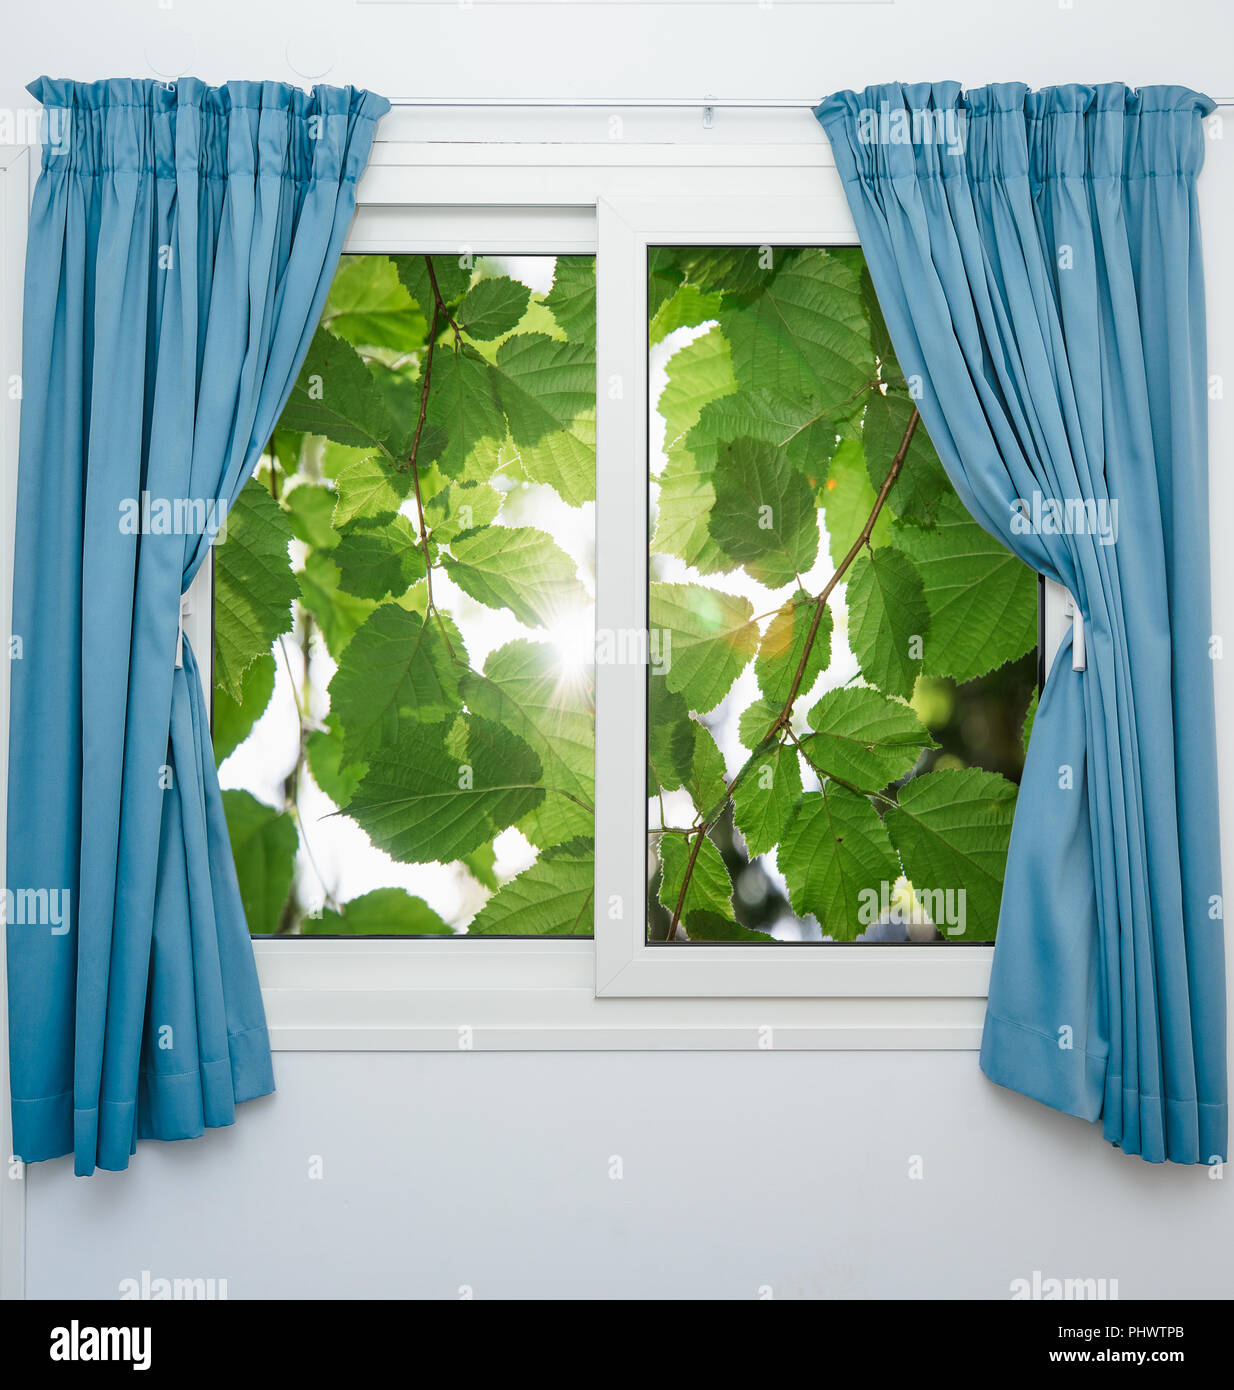 beautiful view from the window to nature picturesquely - Stock Image